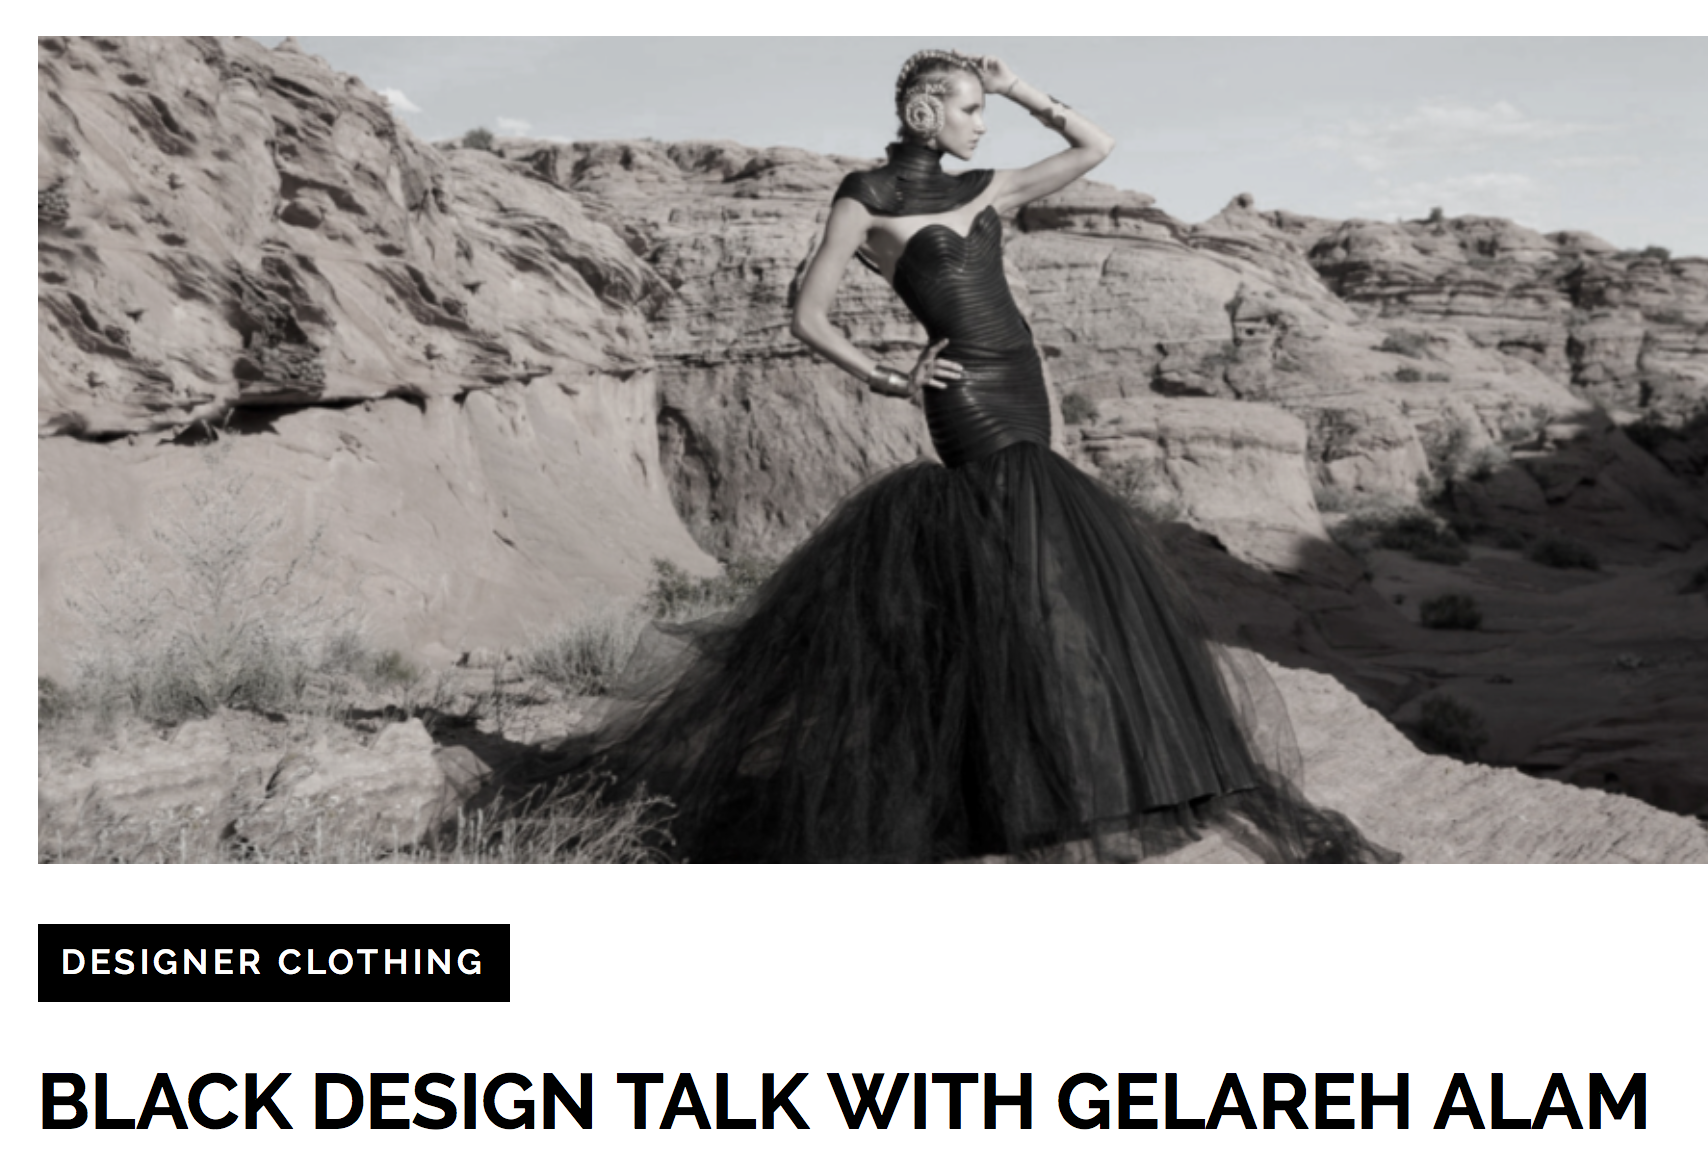 interview with Gelareh by Design Code Black